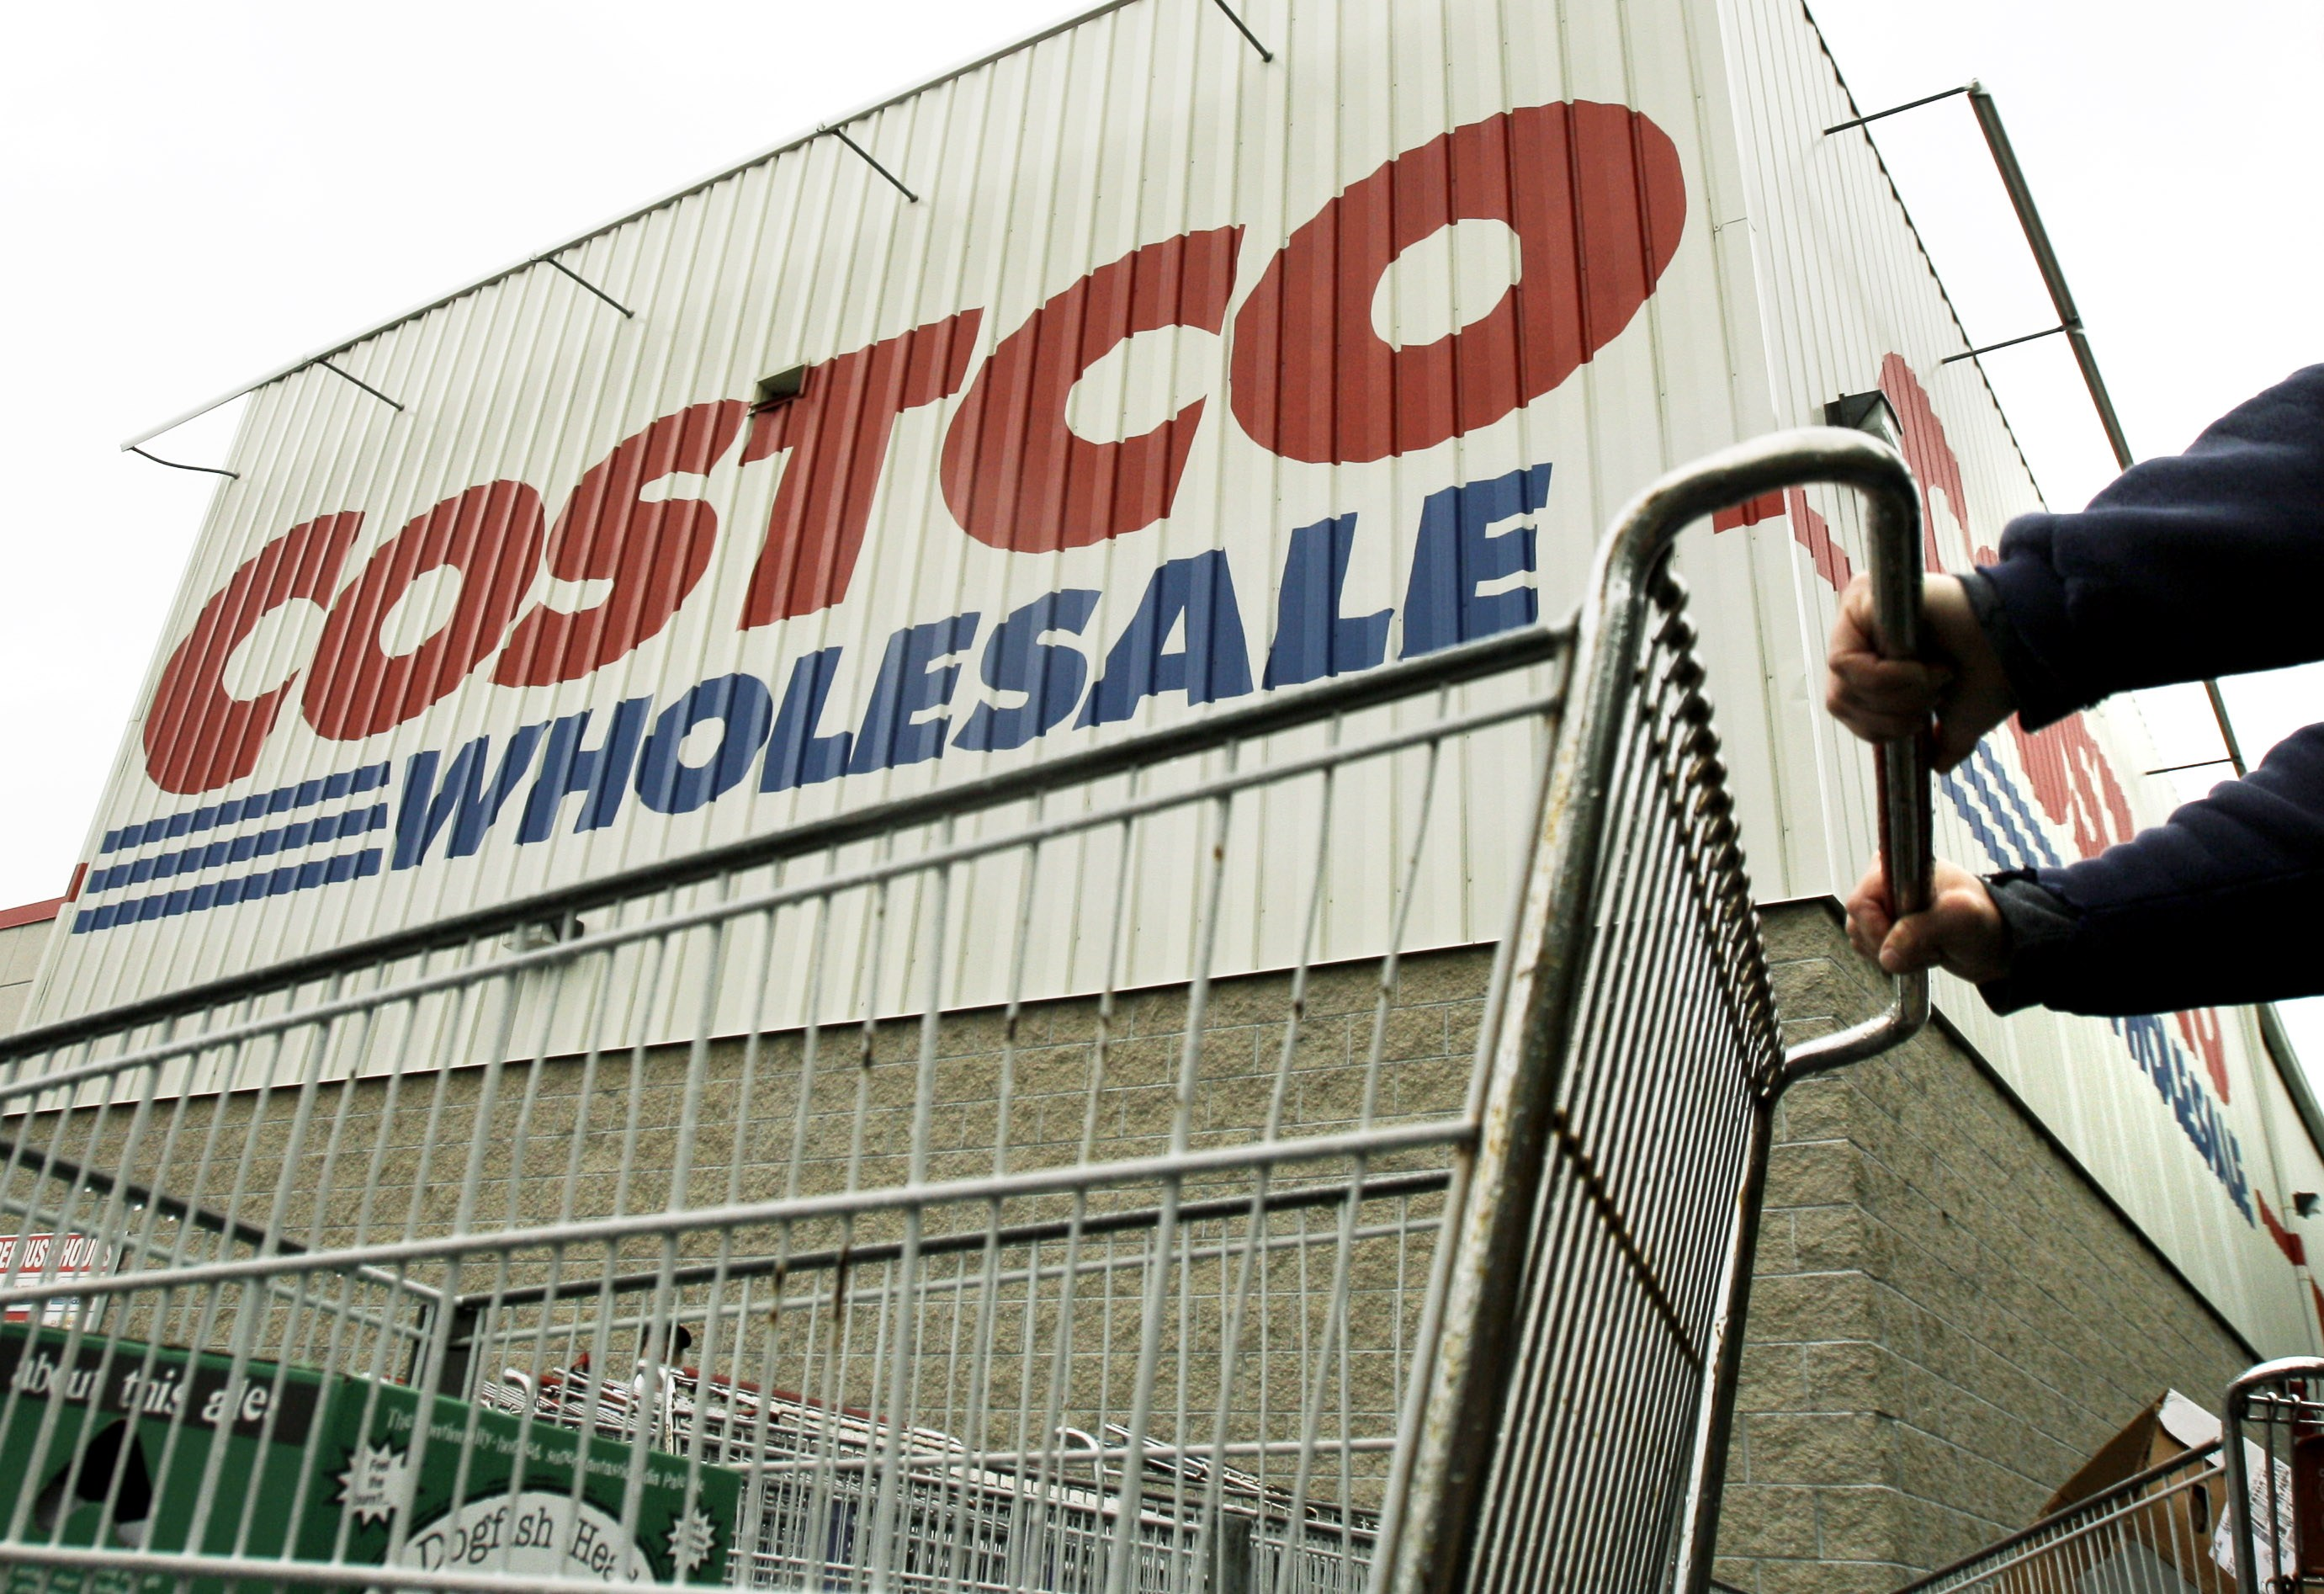 costco strategy Costco deploys a subtle yet effective marketing strategy, emphasizing value for customers, shareholders and employees this means low costs, high pay, plenty of rewards, donations to local.